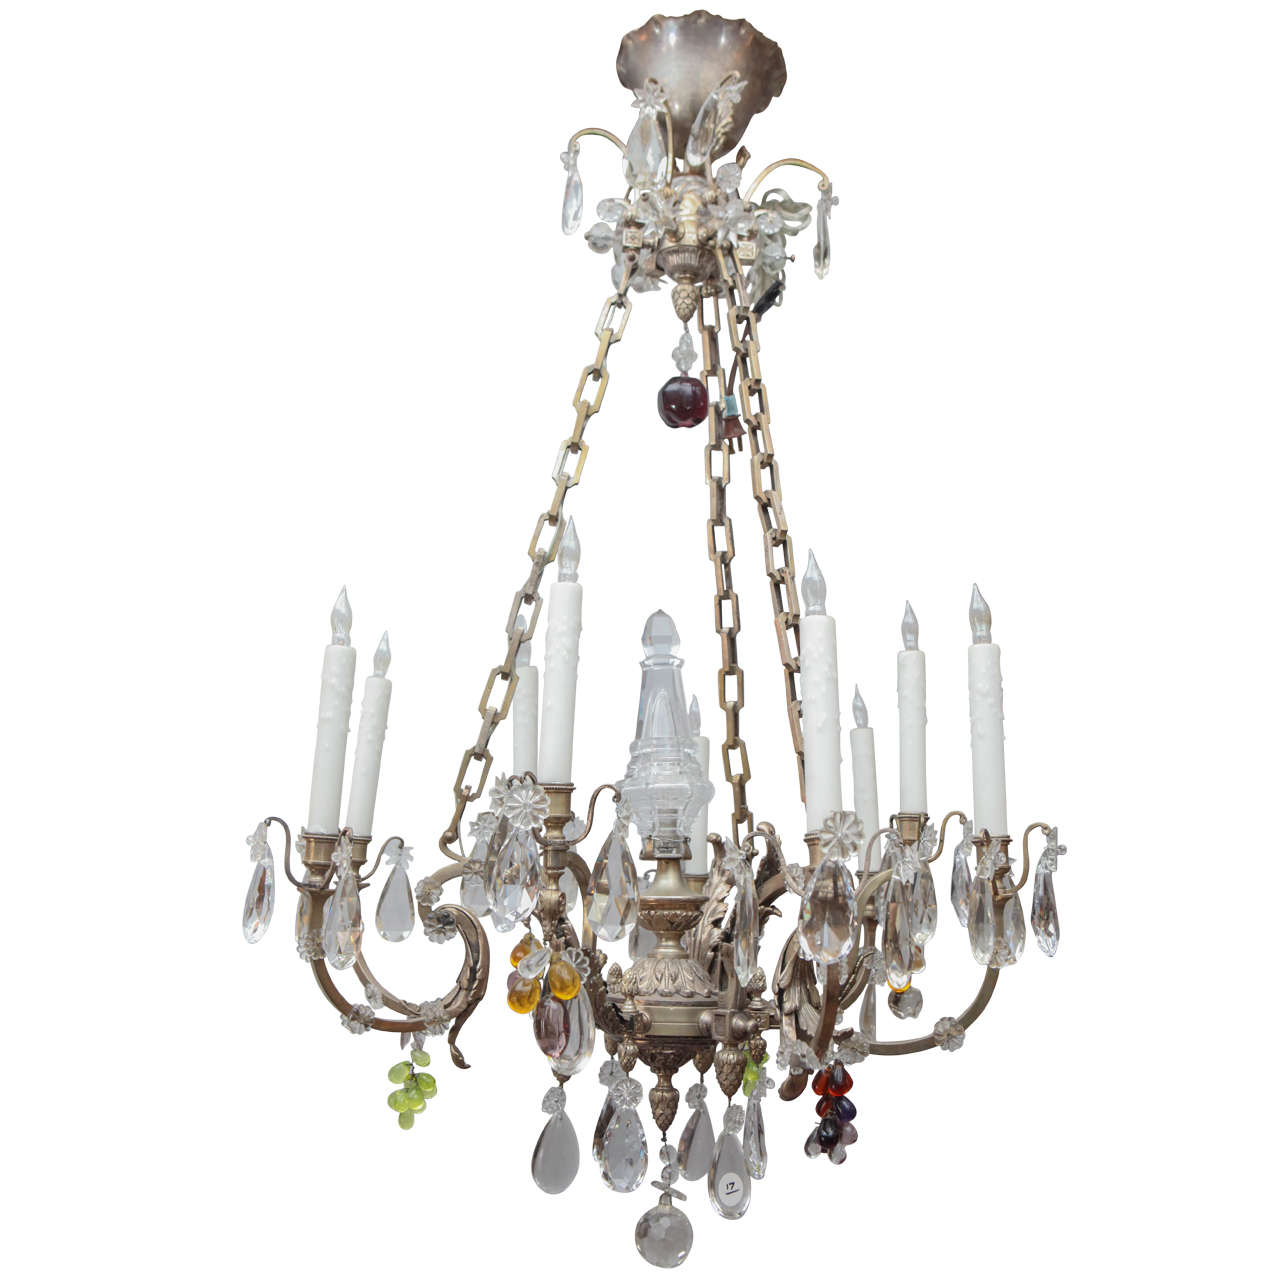 1900s French Silvered Bronze Chandelier with Cut Crystal